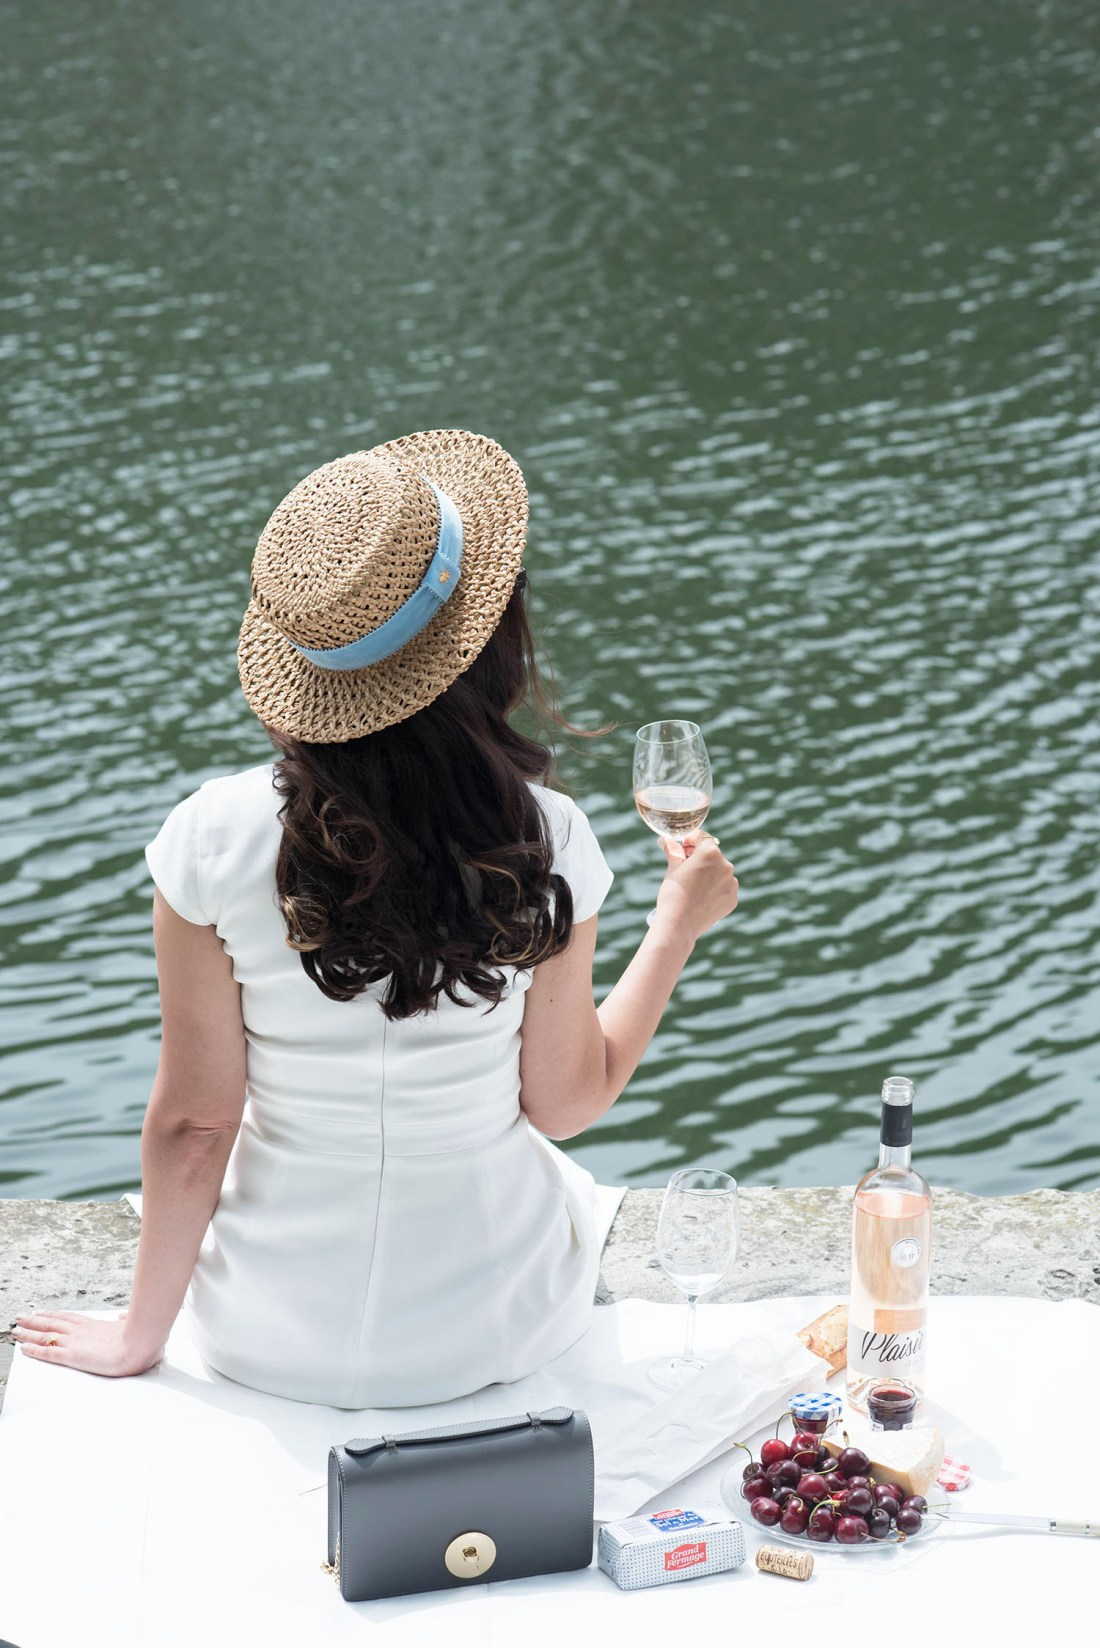 Fashion blogger Cee Fardoe of Coco & Vera celebrates Bastille Day in Paris drinking rose on the Seine wearing a Krasnova Modiste hat